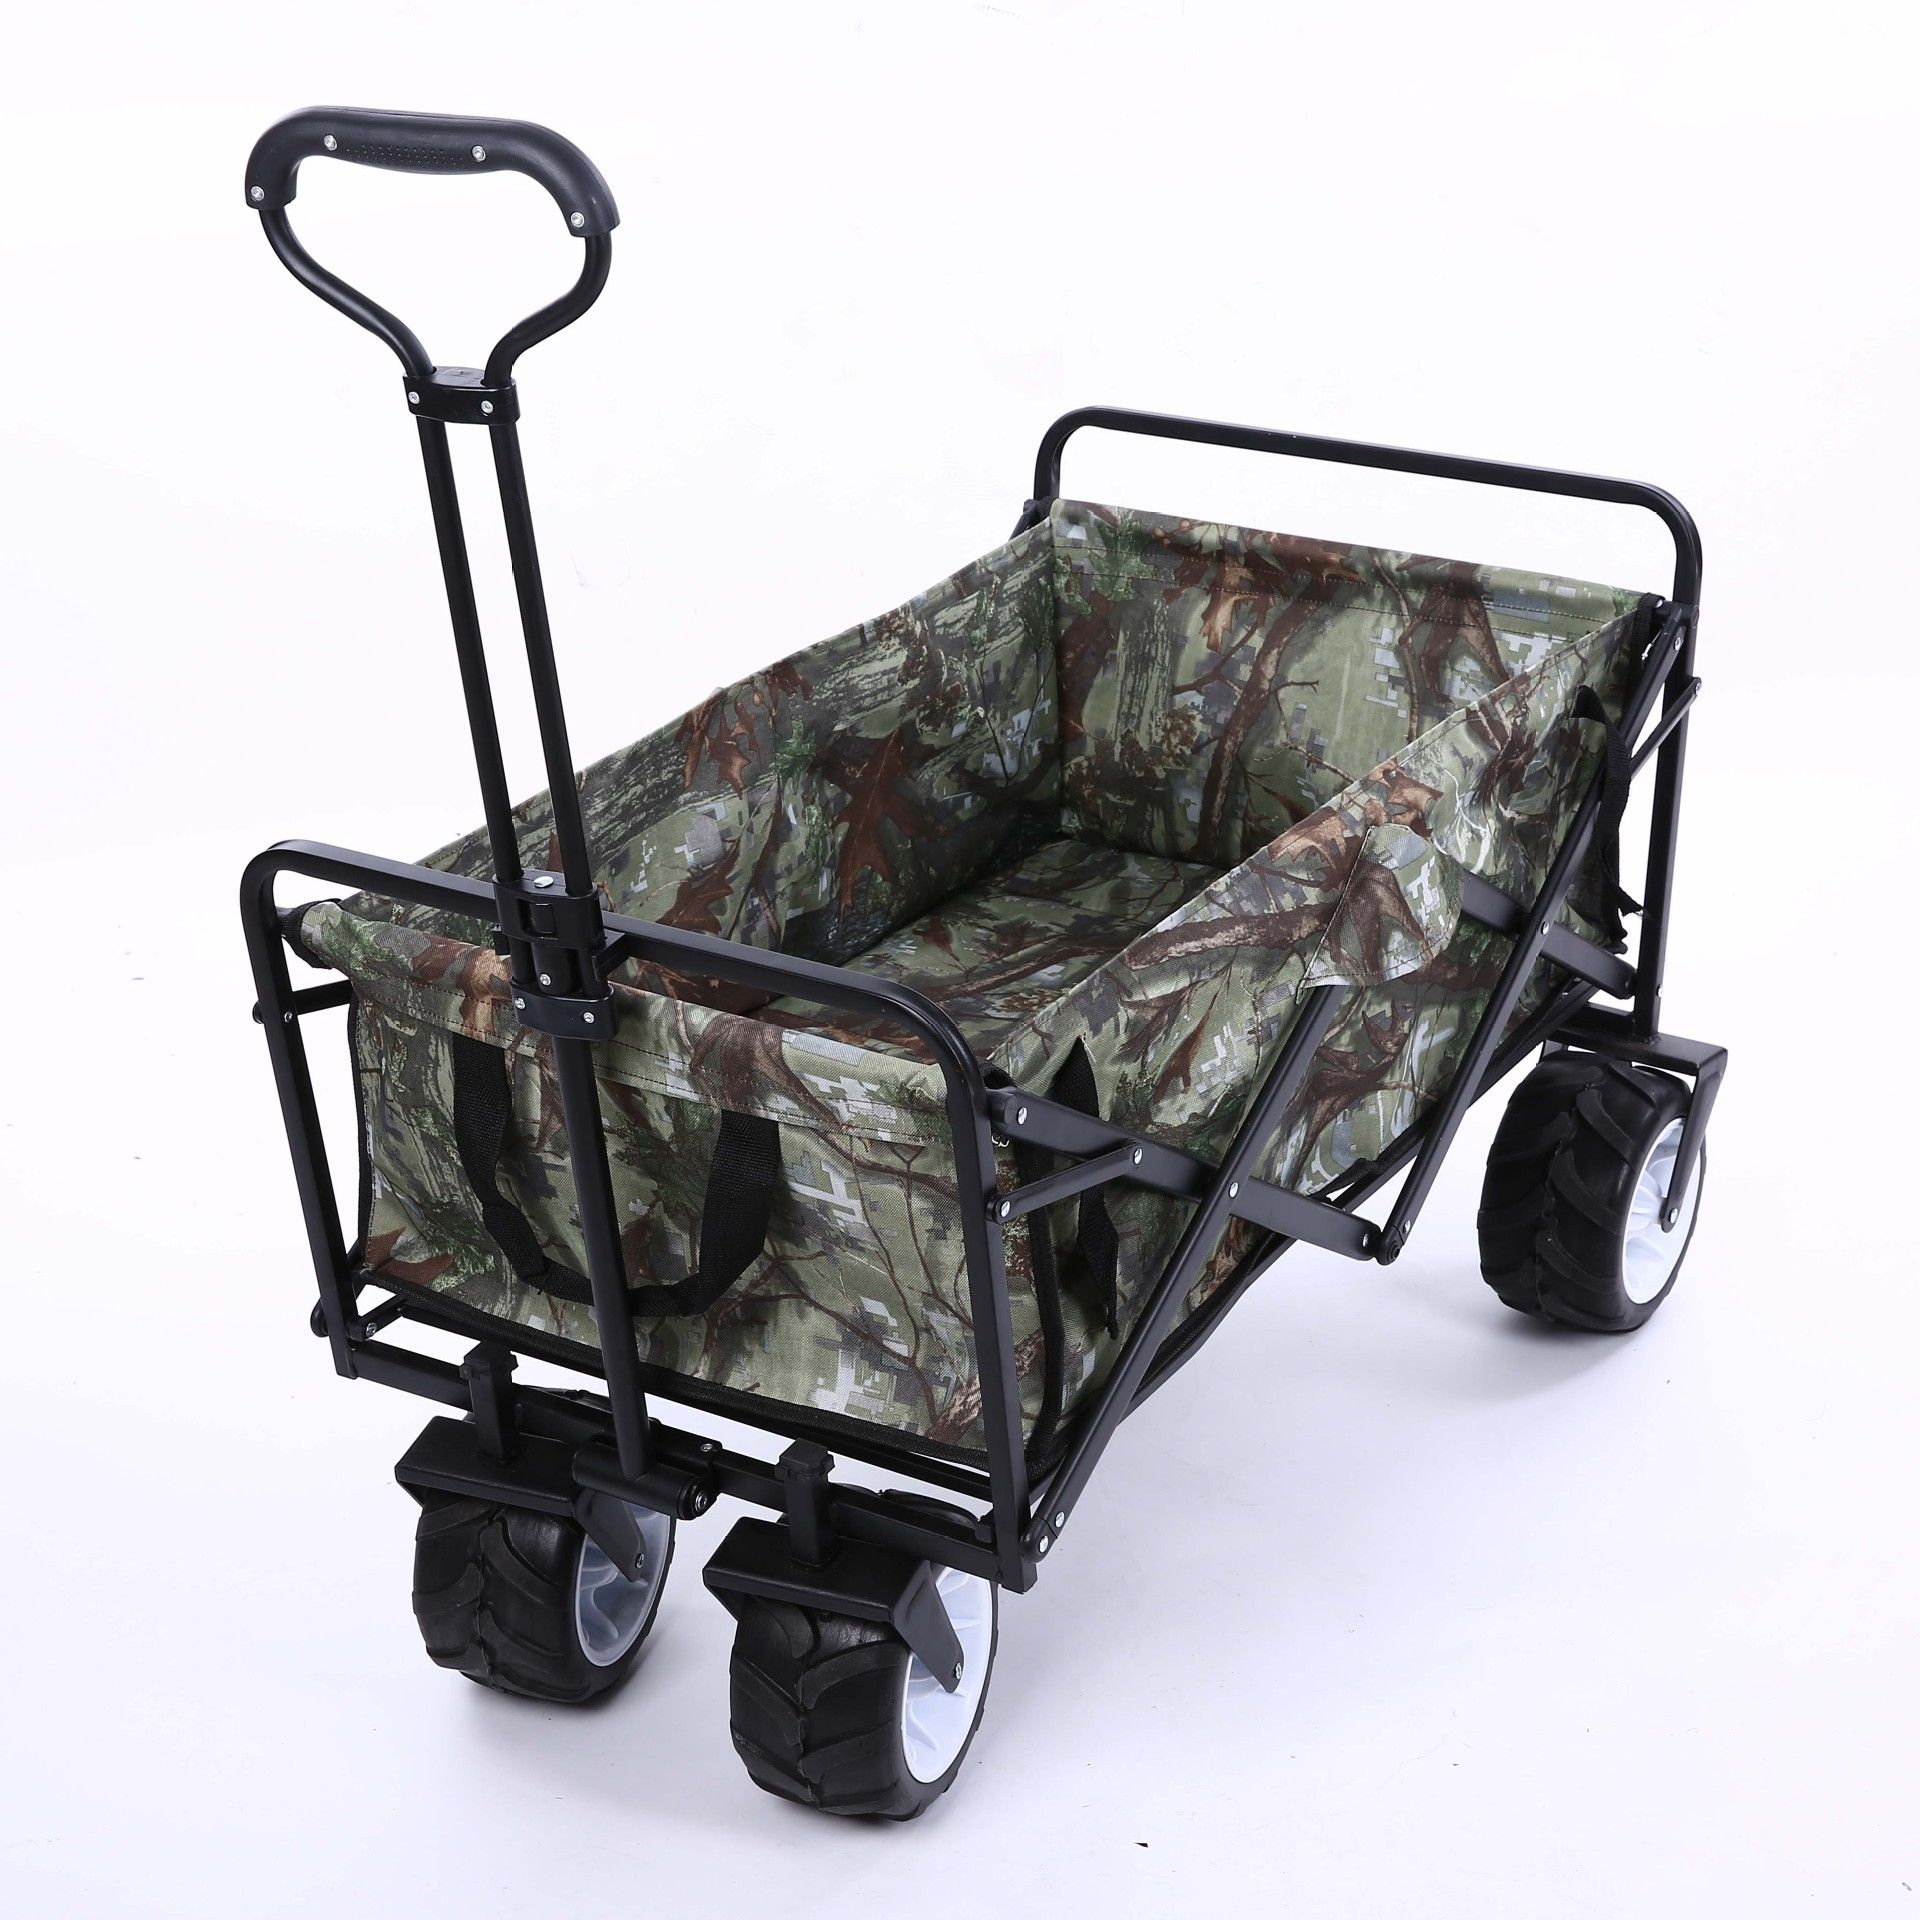 Stainless Steel Camouflage Pet Stroller Portable Folding Shopping Cart Four-wheeled Trolley for Outdoor Camping Fishing